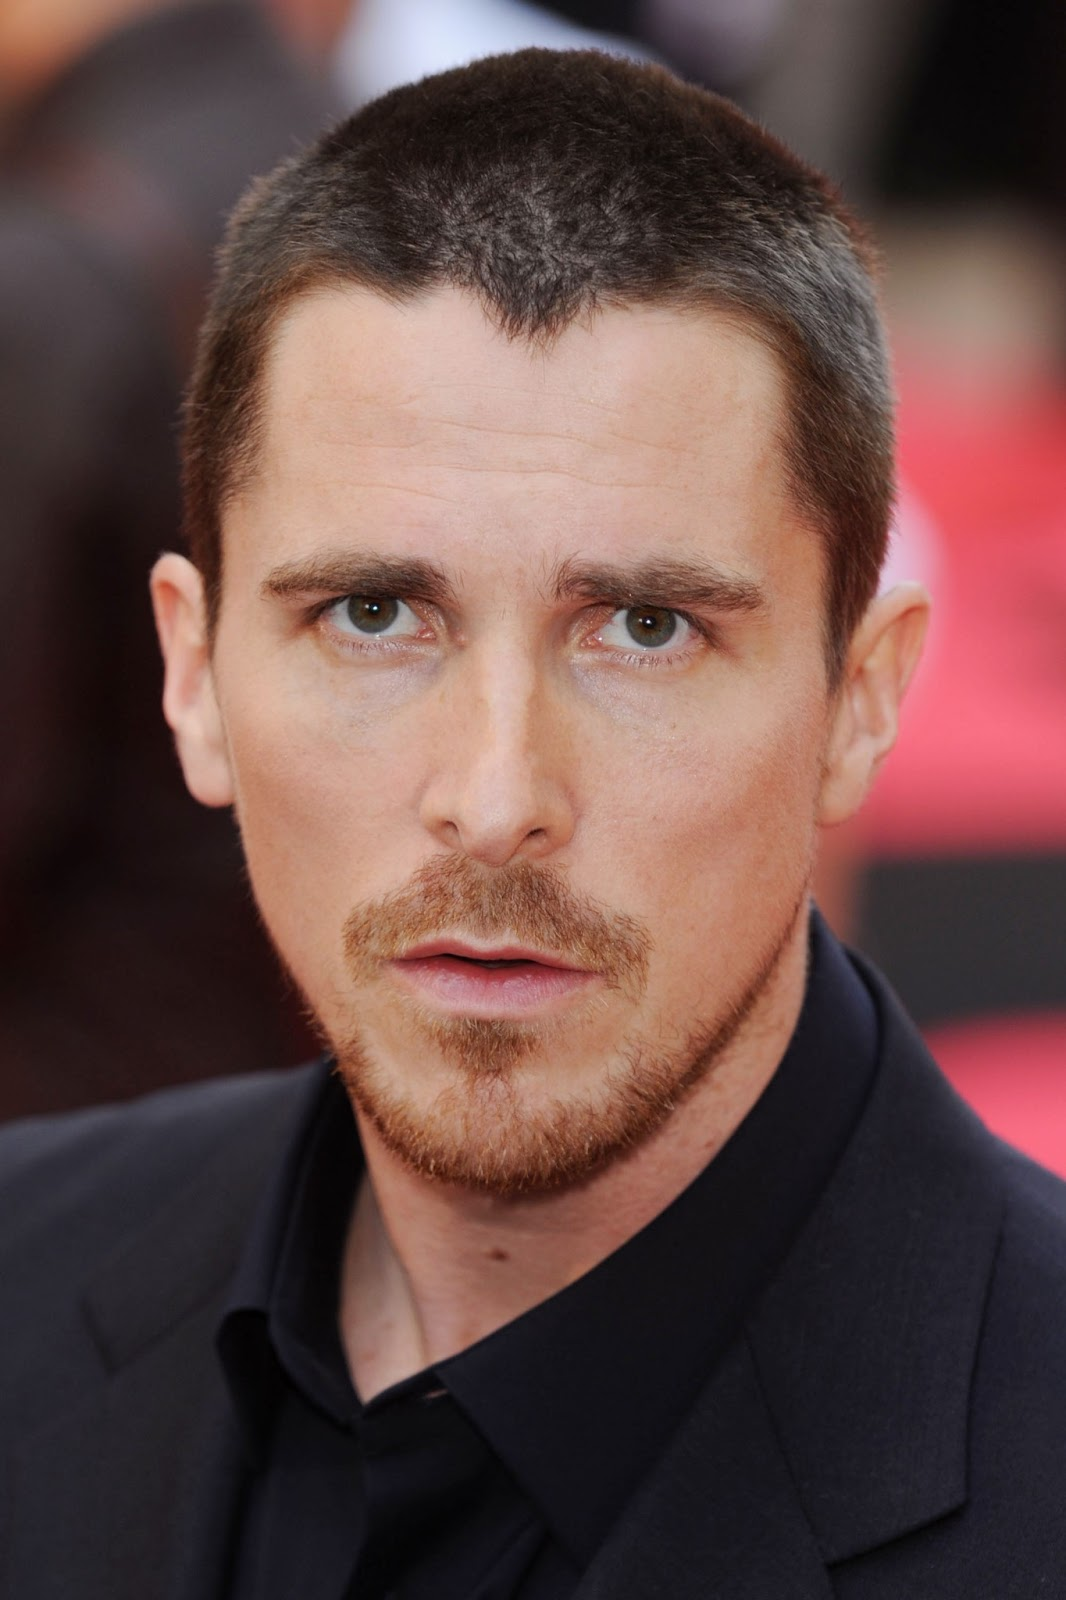 Christian Bale Hairstyles Men Hairstyles Short Long